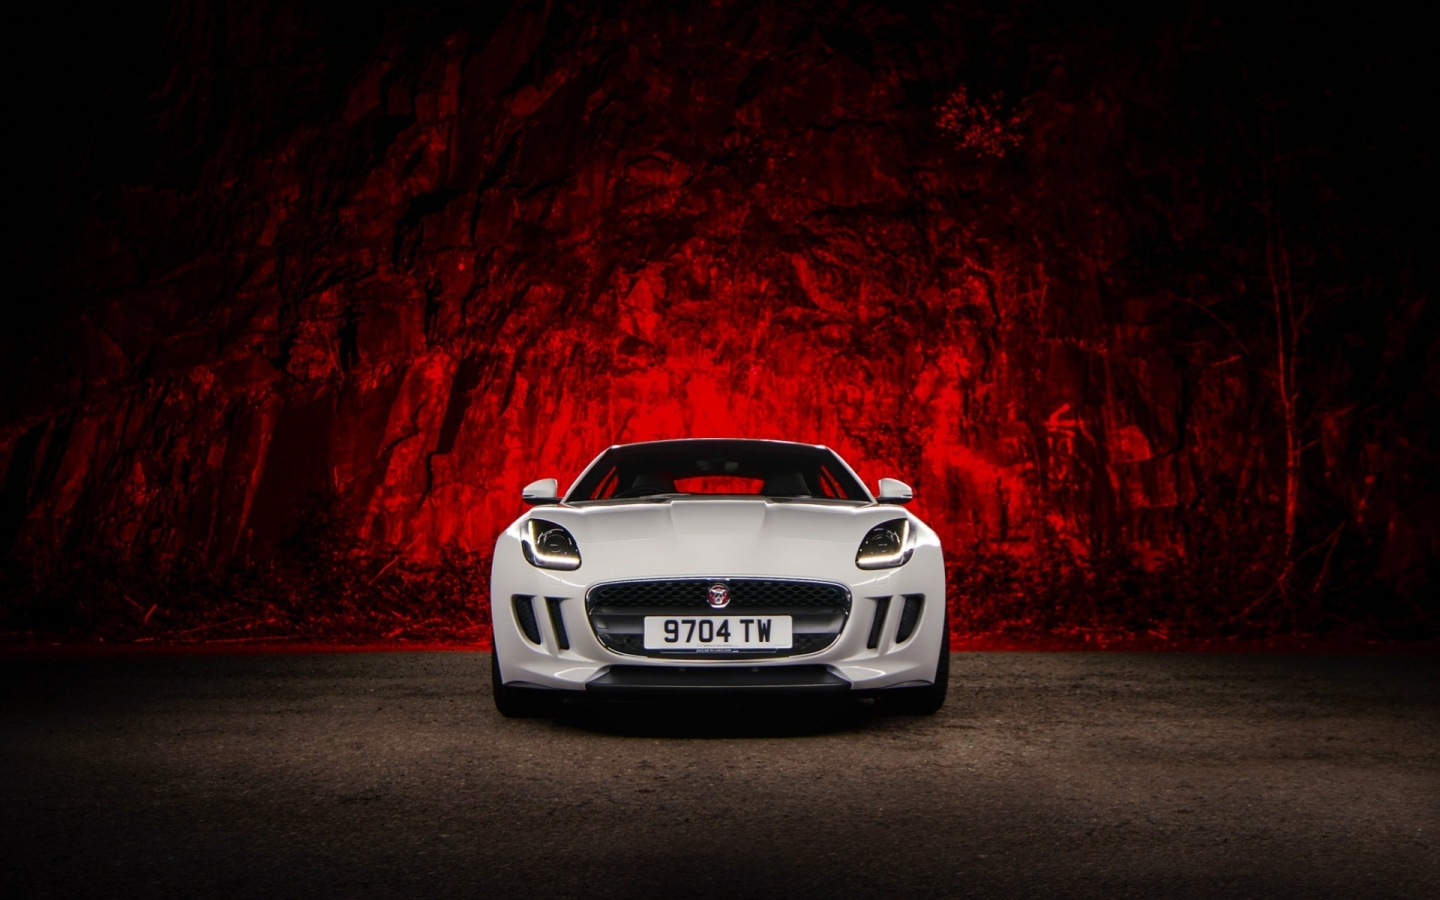 Jaguar F Type White for 1440 x 900 widescreen resolution